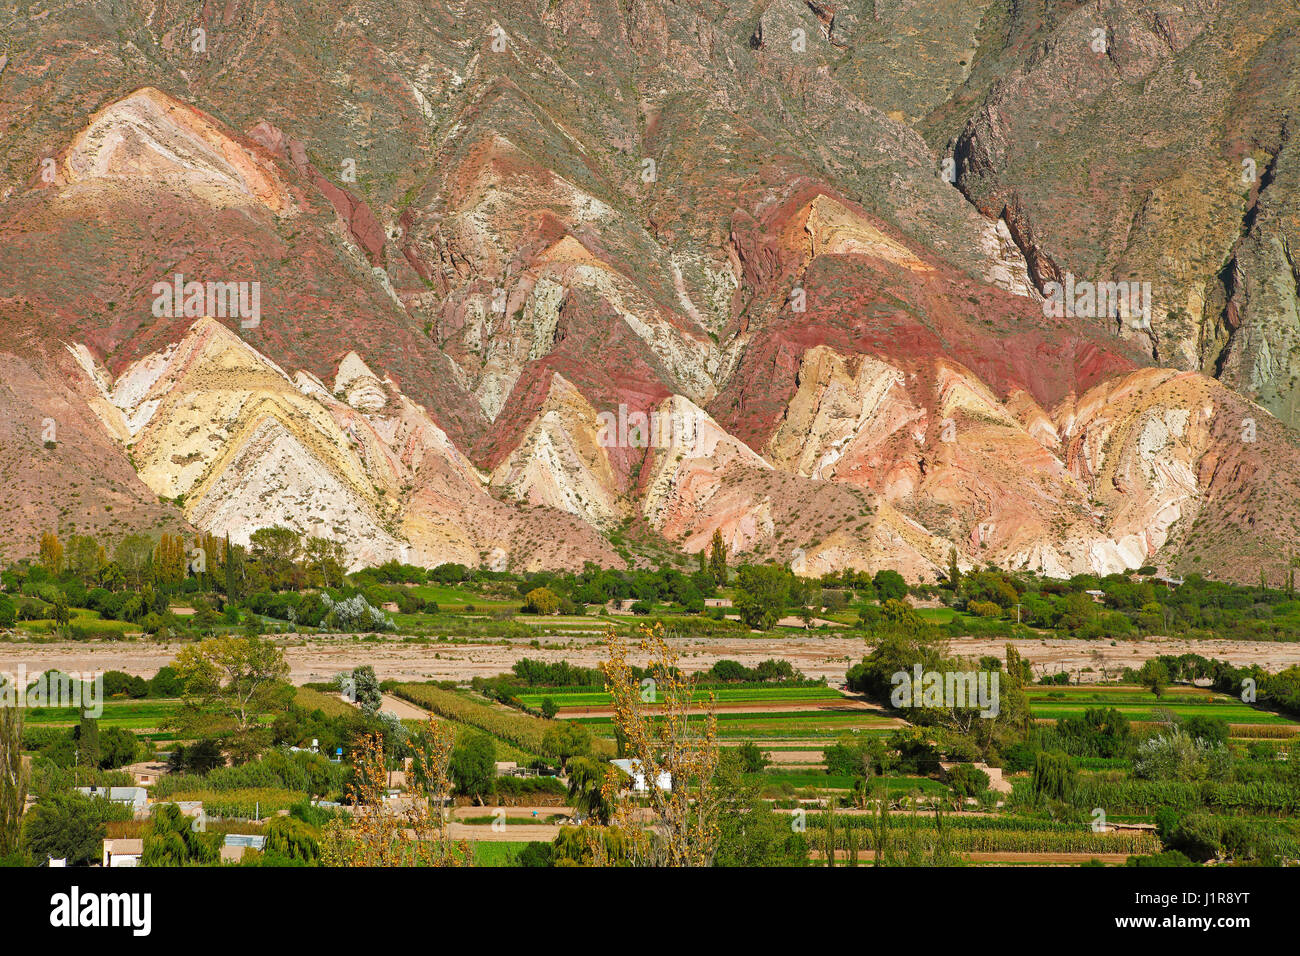 Colorful rock layers, Painter's Palette, Paleta del Pintor, Maimará, Humahuaca ravine, Jujuy Province, - Stock Image